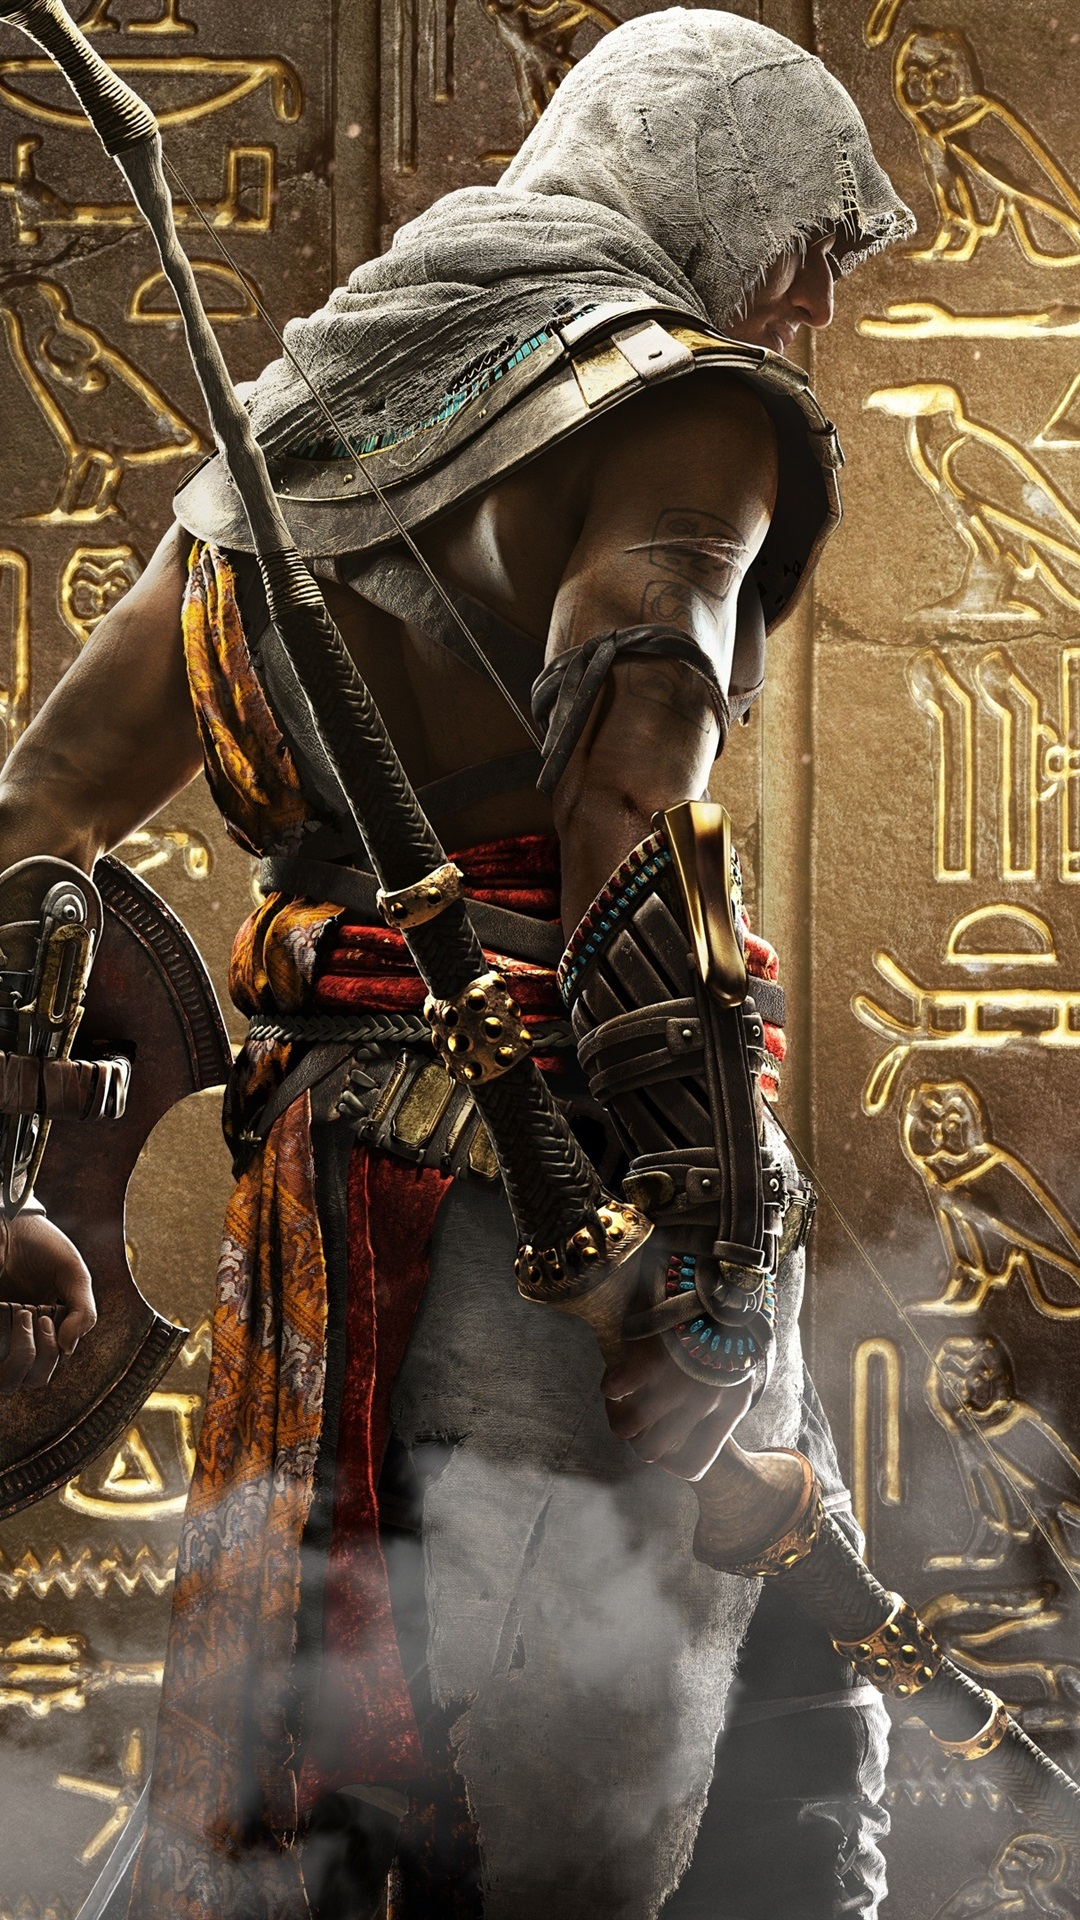 Assassin S Creed Origins Ubisoft Back View 1080x1920 Iphone 8 7 6 6s Plus Wallpaper Background Picture Image